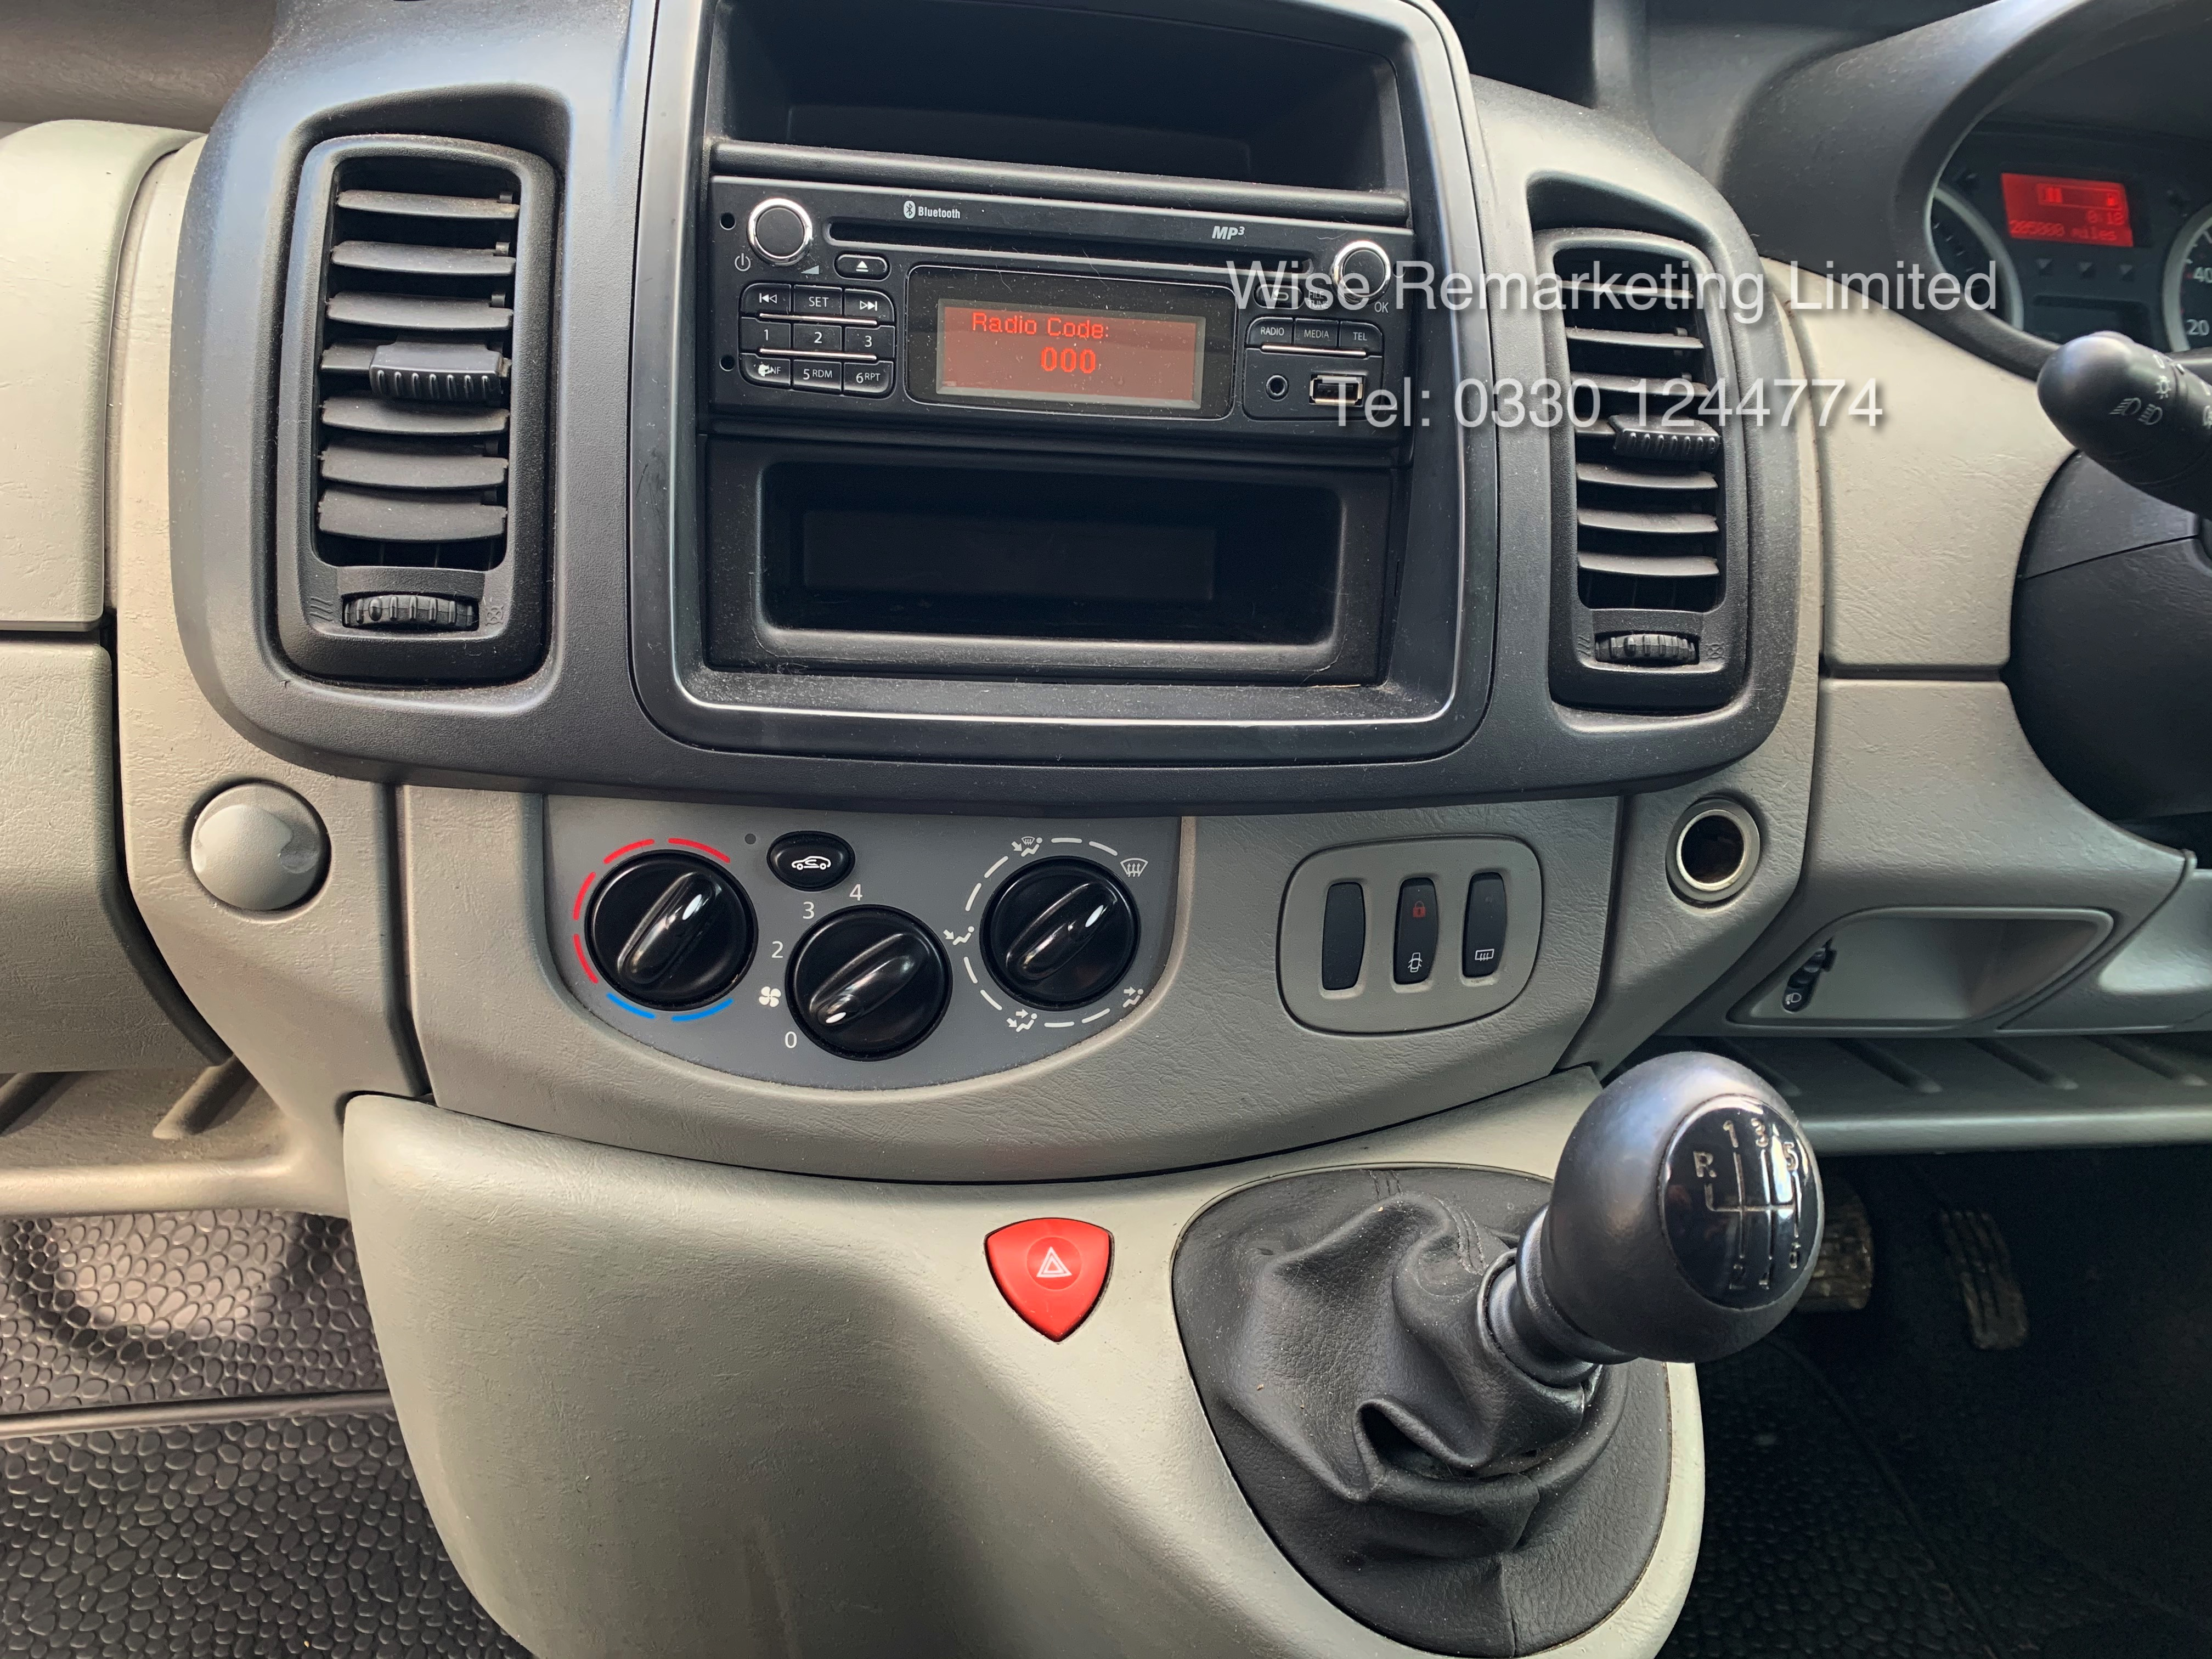 Renault Trafic 2.0 DCI (115 BHP) - 6 Speed - 2014 Reg - Ply Lined - - Image 16 of 21